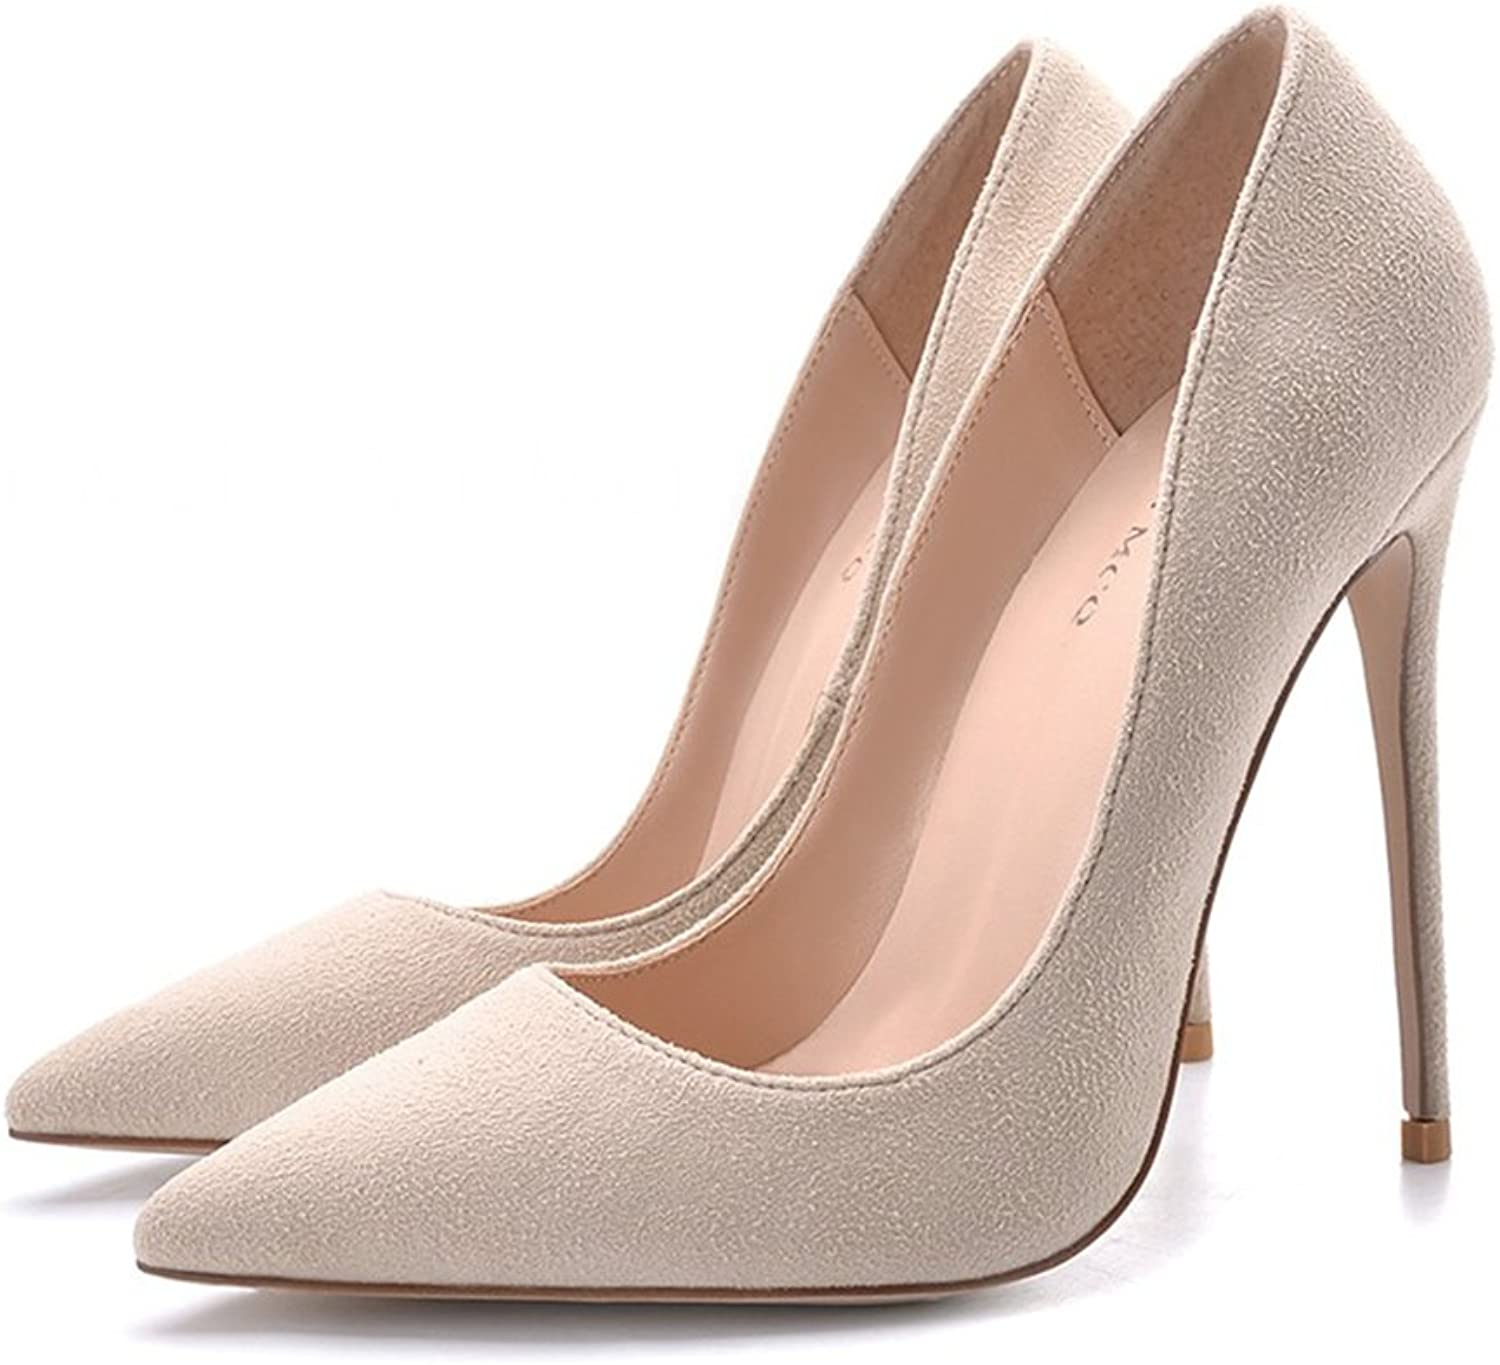 Mesurn High-Heeled shoes Pointed fine with Women's shoes 8cm 10cm 12cm Nude color Sexy Party Wedding shoes Heeled Sandals (color   Height 12cm, Size   36-shoes long230mm)